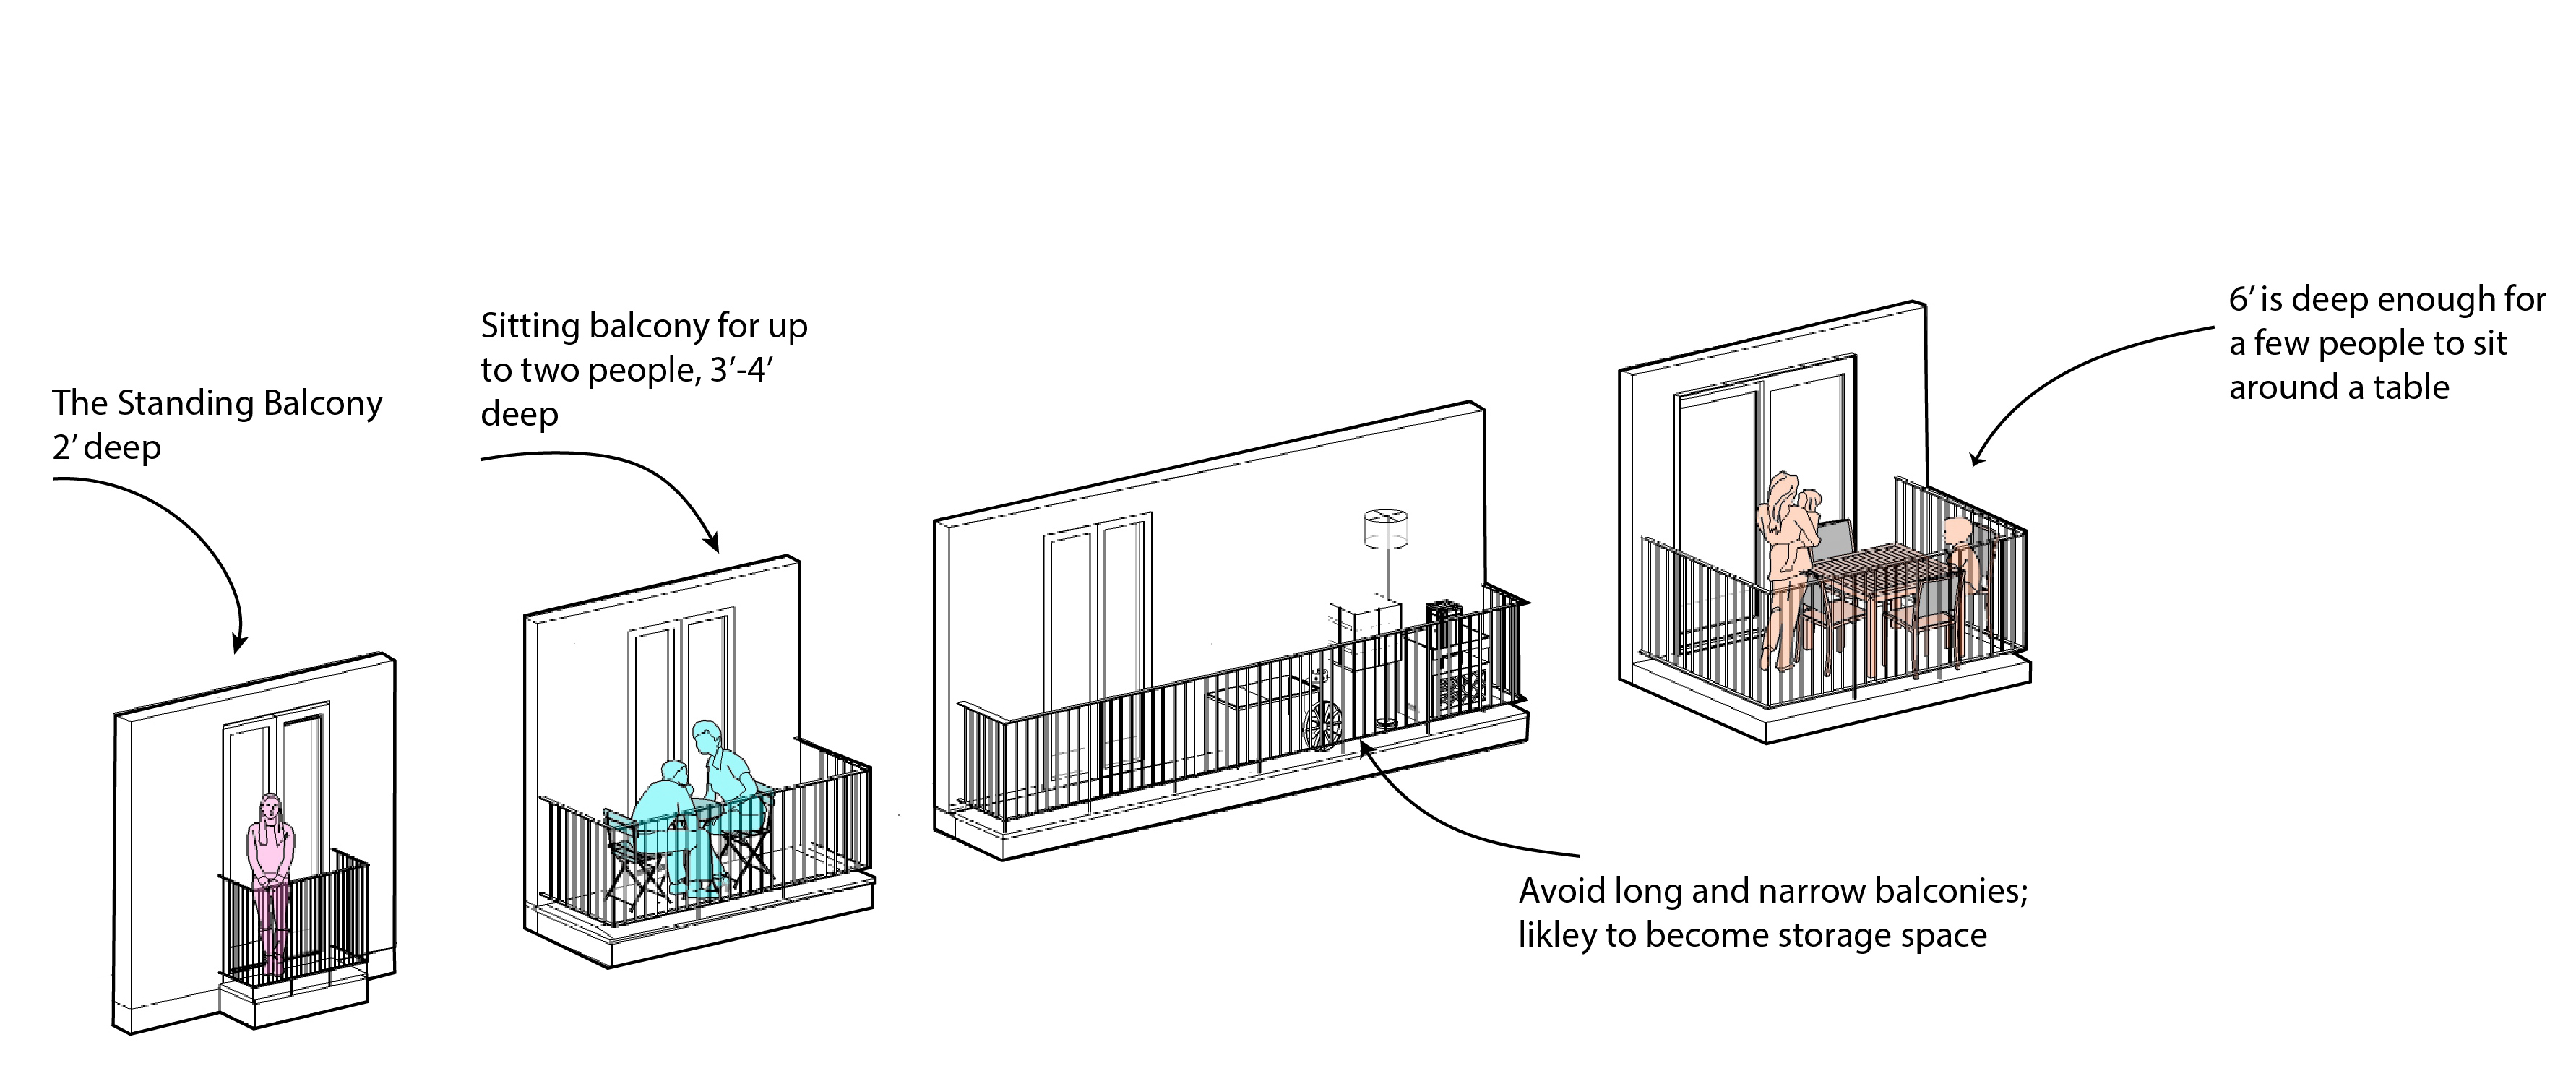 8 Tips For Designing Balconies That People Will Actually Use